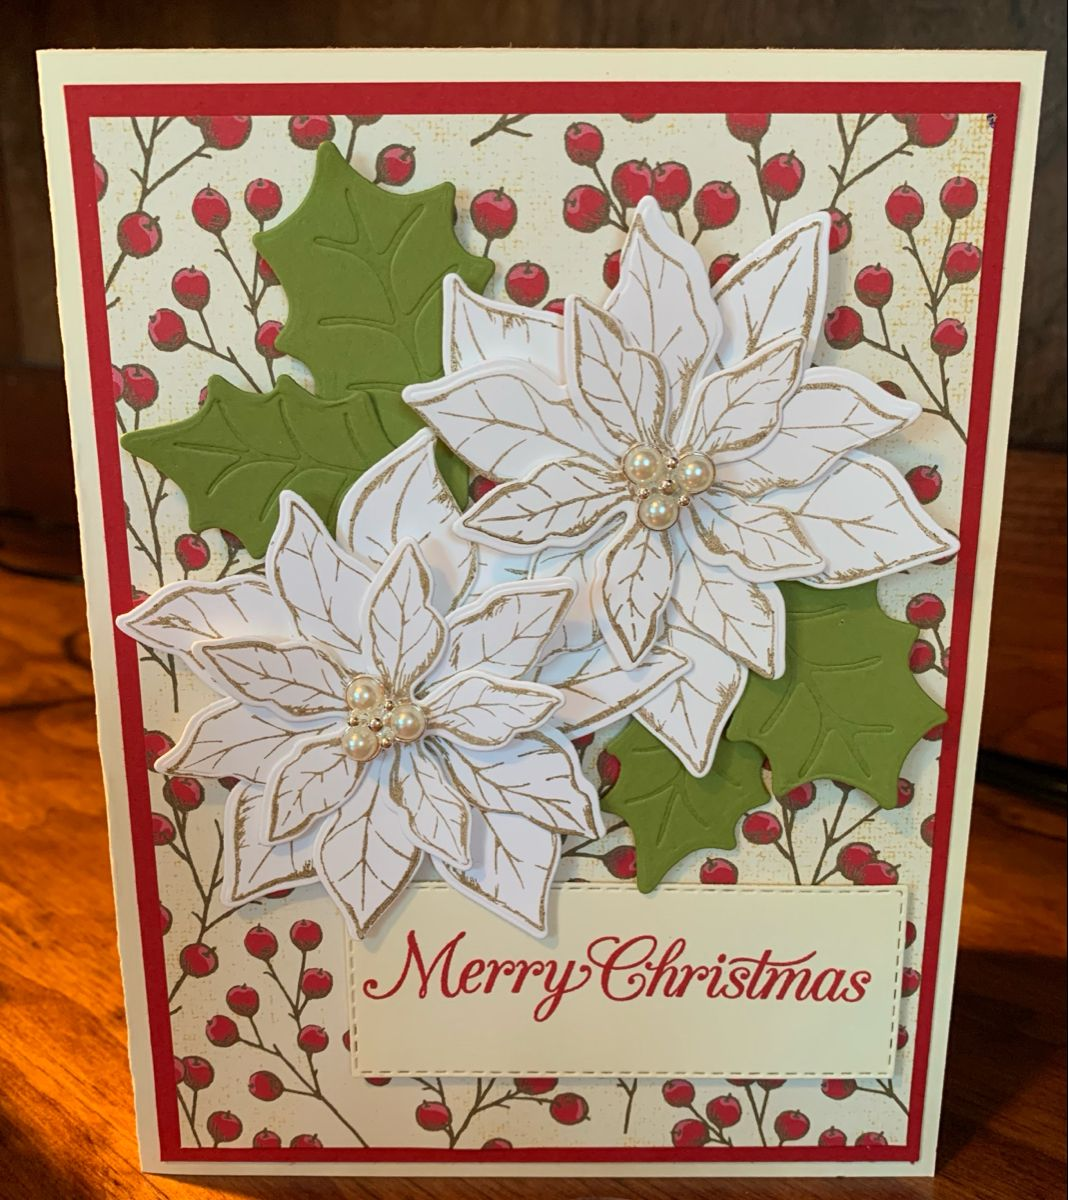 Poinsettias For Christmas 2020 Stampin Up Poinsettia Petals in 2020 | Holiday cards handmade